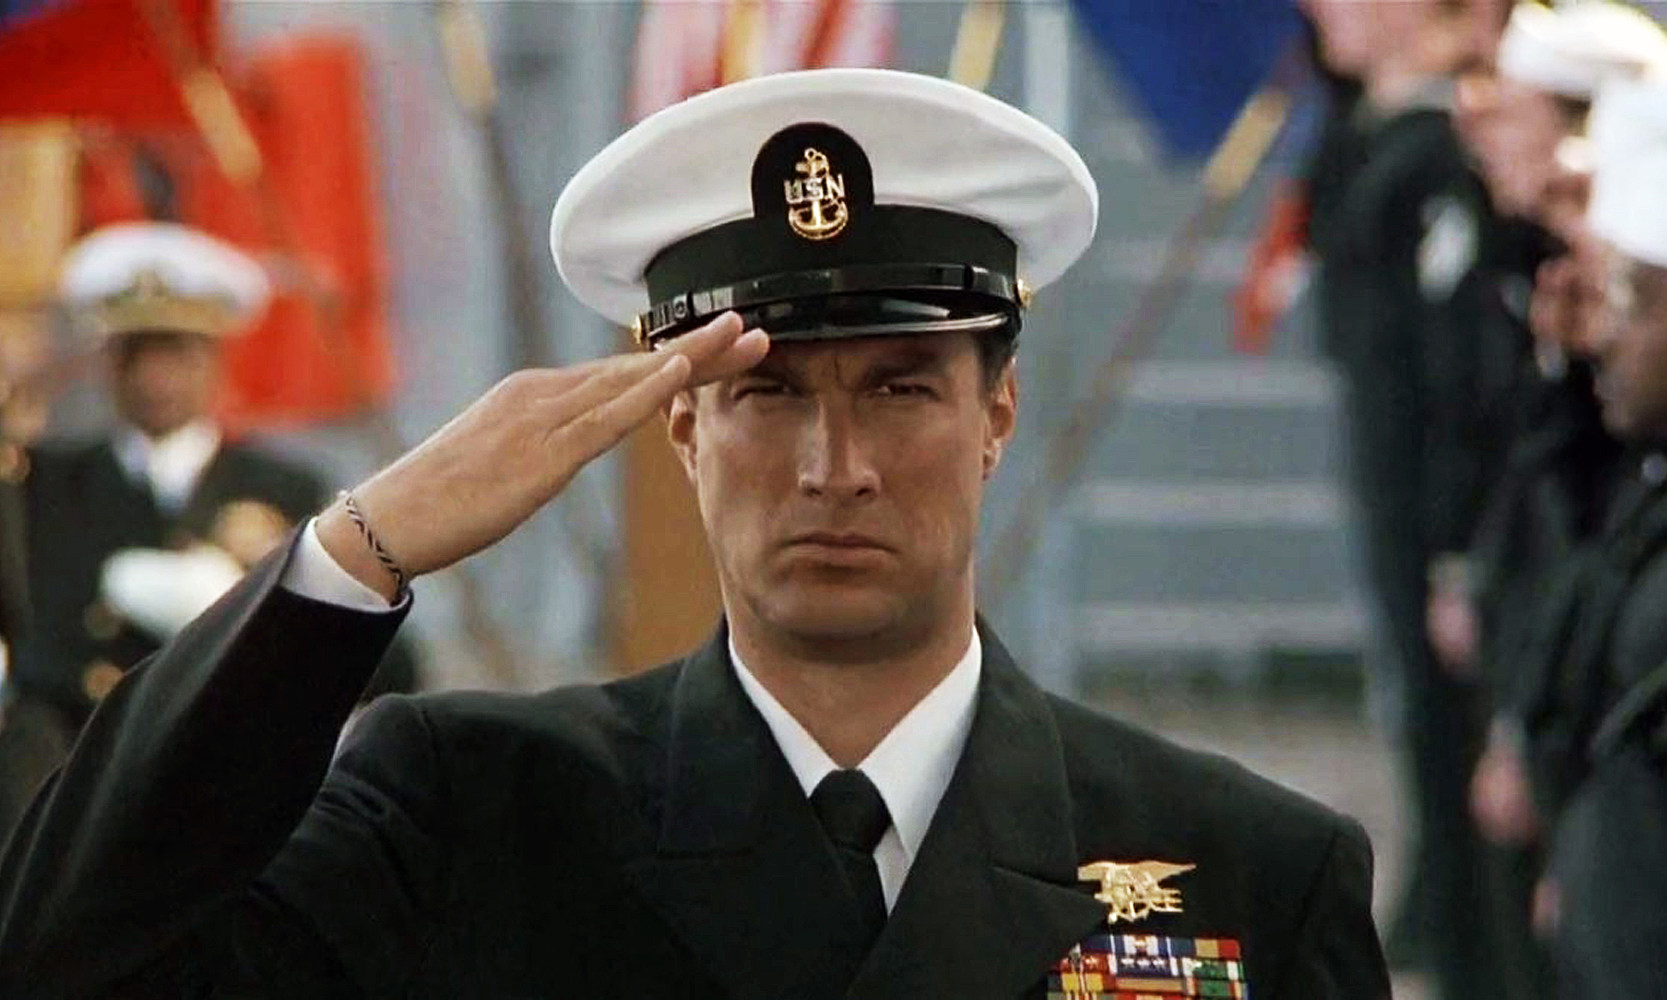 Steven Seagal Under Siege salute